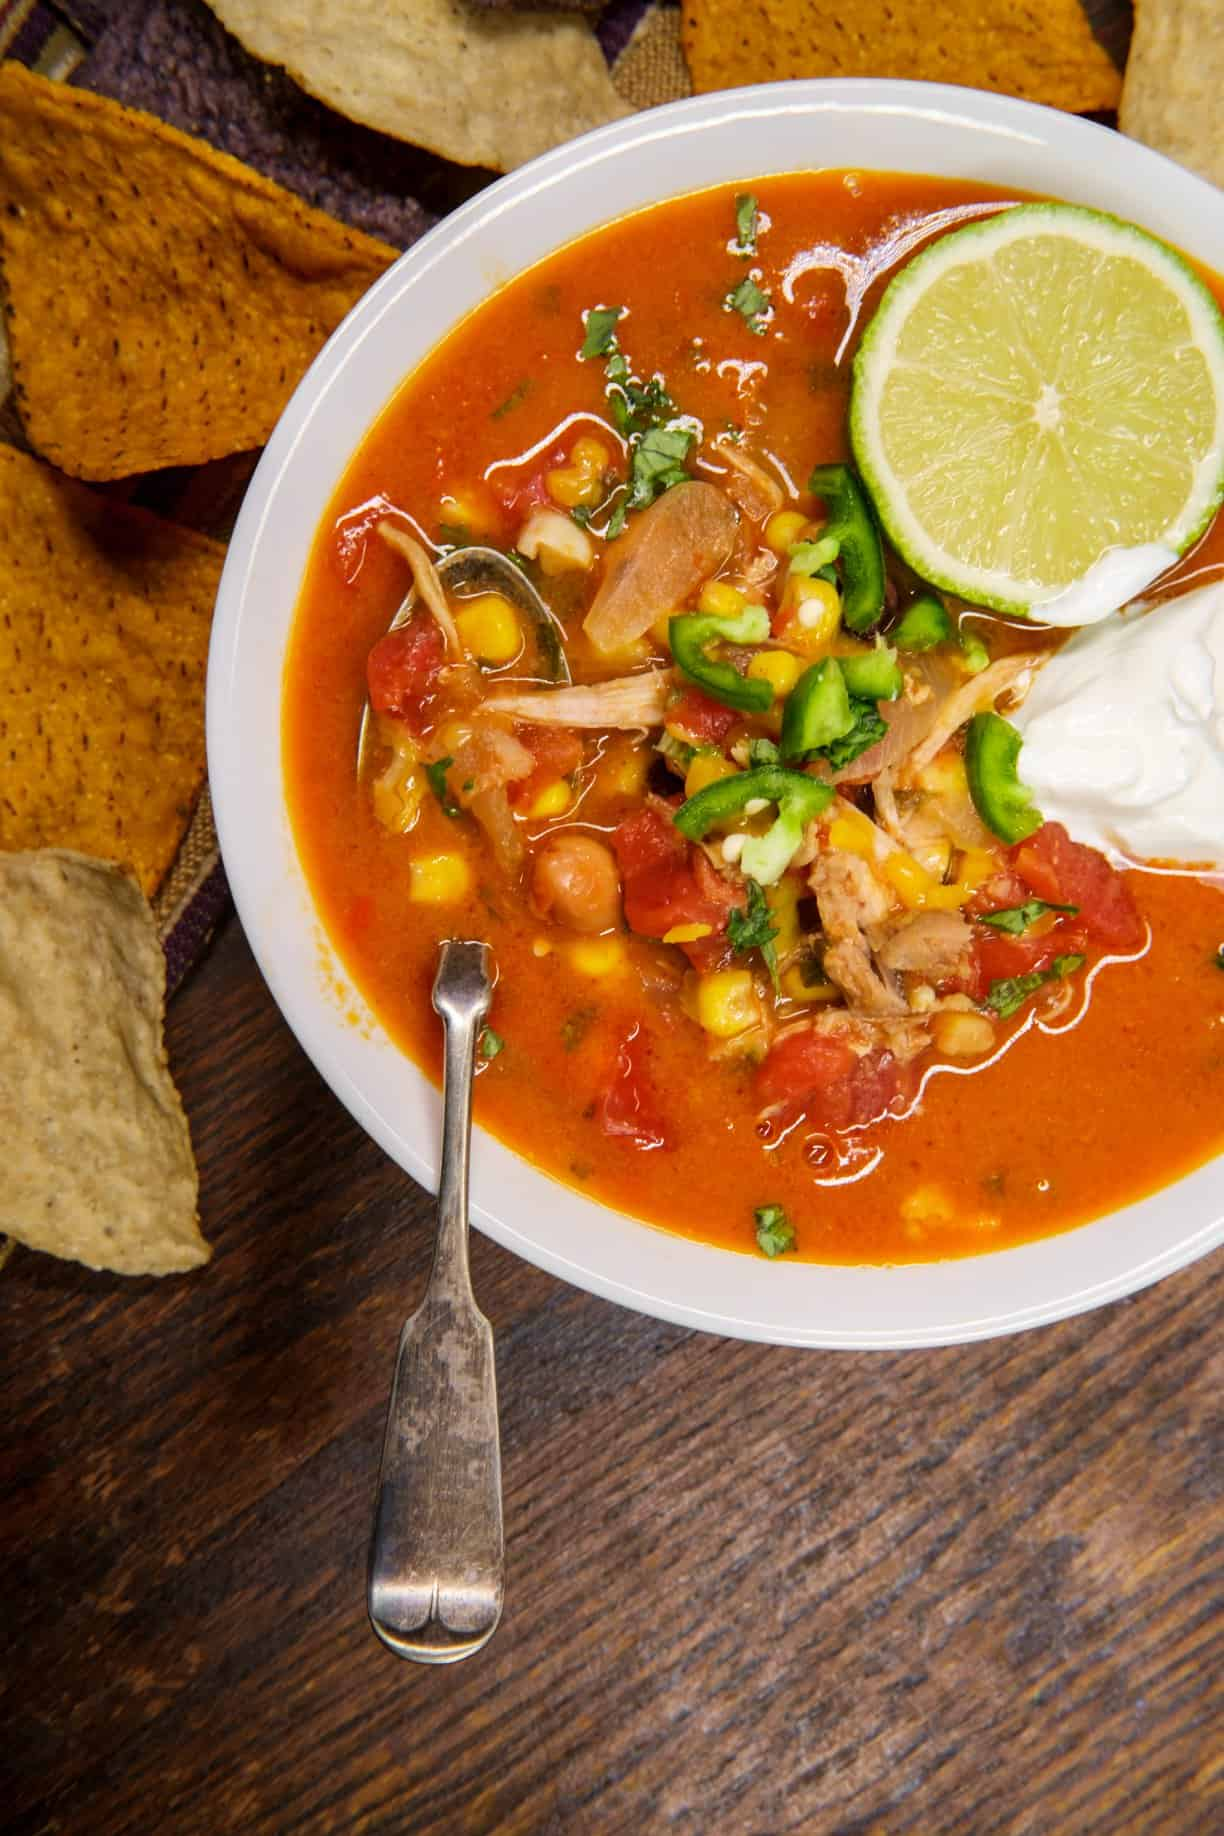 A bowl of Chicken Tortilla Soup, garnished with a lime, cilantro and sour cream, sits atop a wooden cutting board, surrounded by tortilla chips